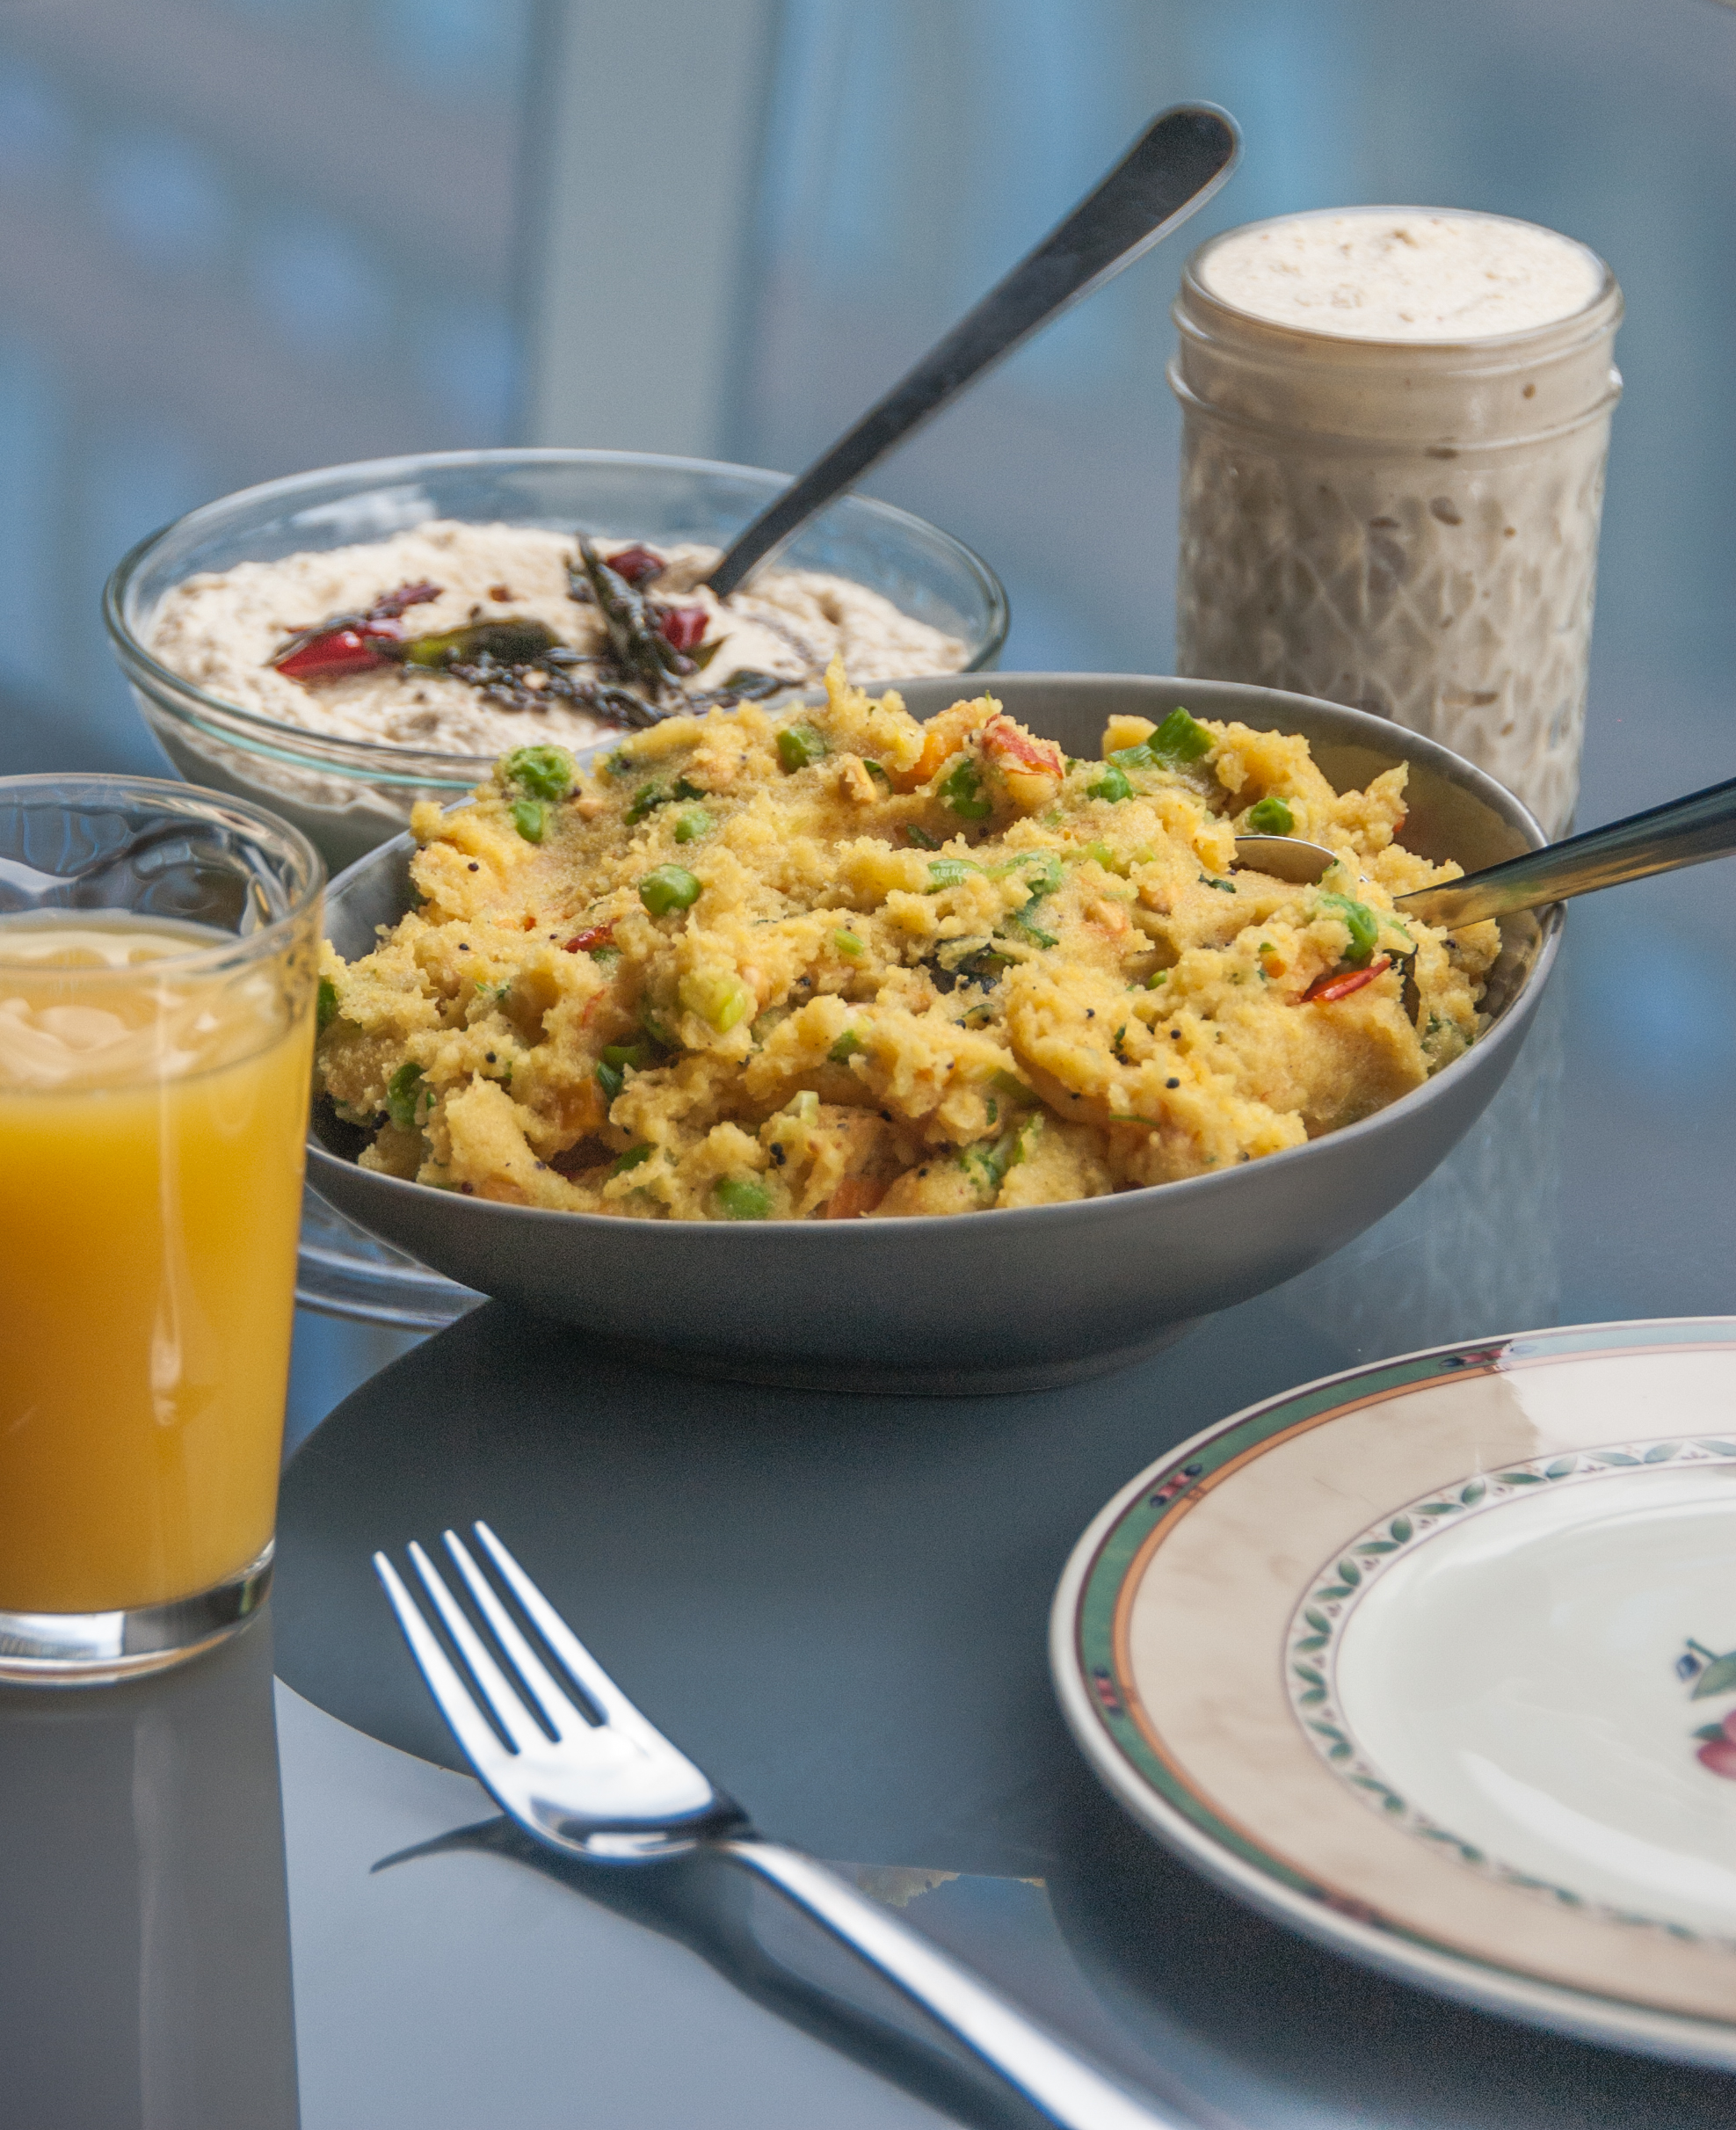 Upma is a highly loved south Indian breakfast recipe made of semolina, and flavoured with turmeric, mustard seeds, and curry leaves. Indians prefer it with a dollop of freshly prepared coconut chutney by the side.